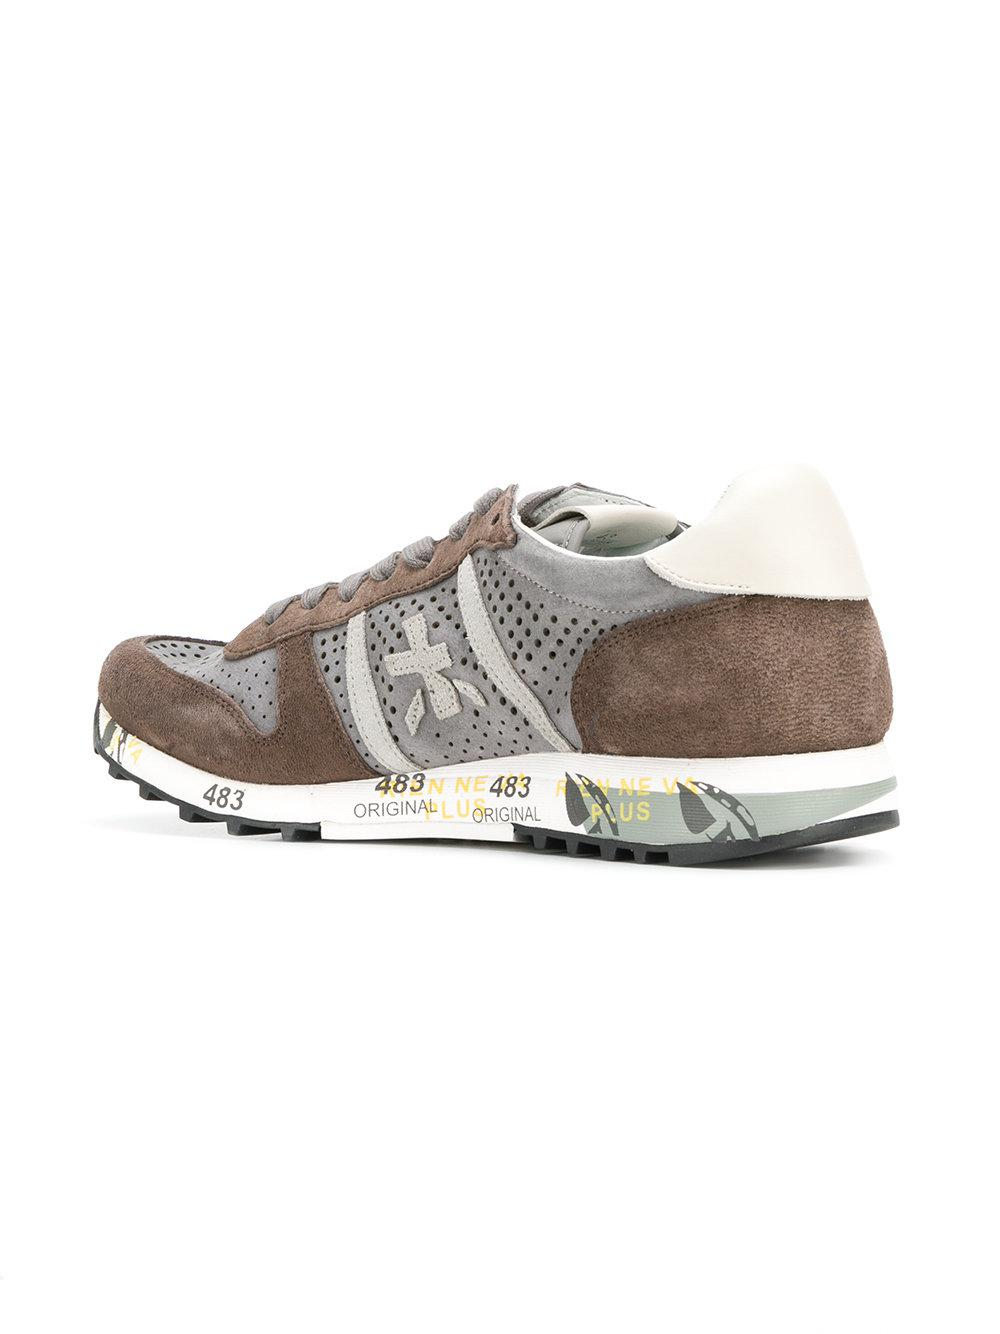 Sale View Outlet Discount Sale Light grey Eric pierced sneakers Premiata Low Shipping Cheap Price Best Sale bEDfpk6